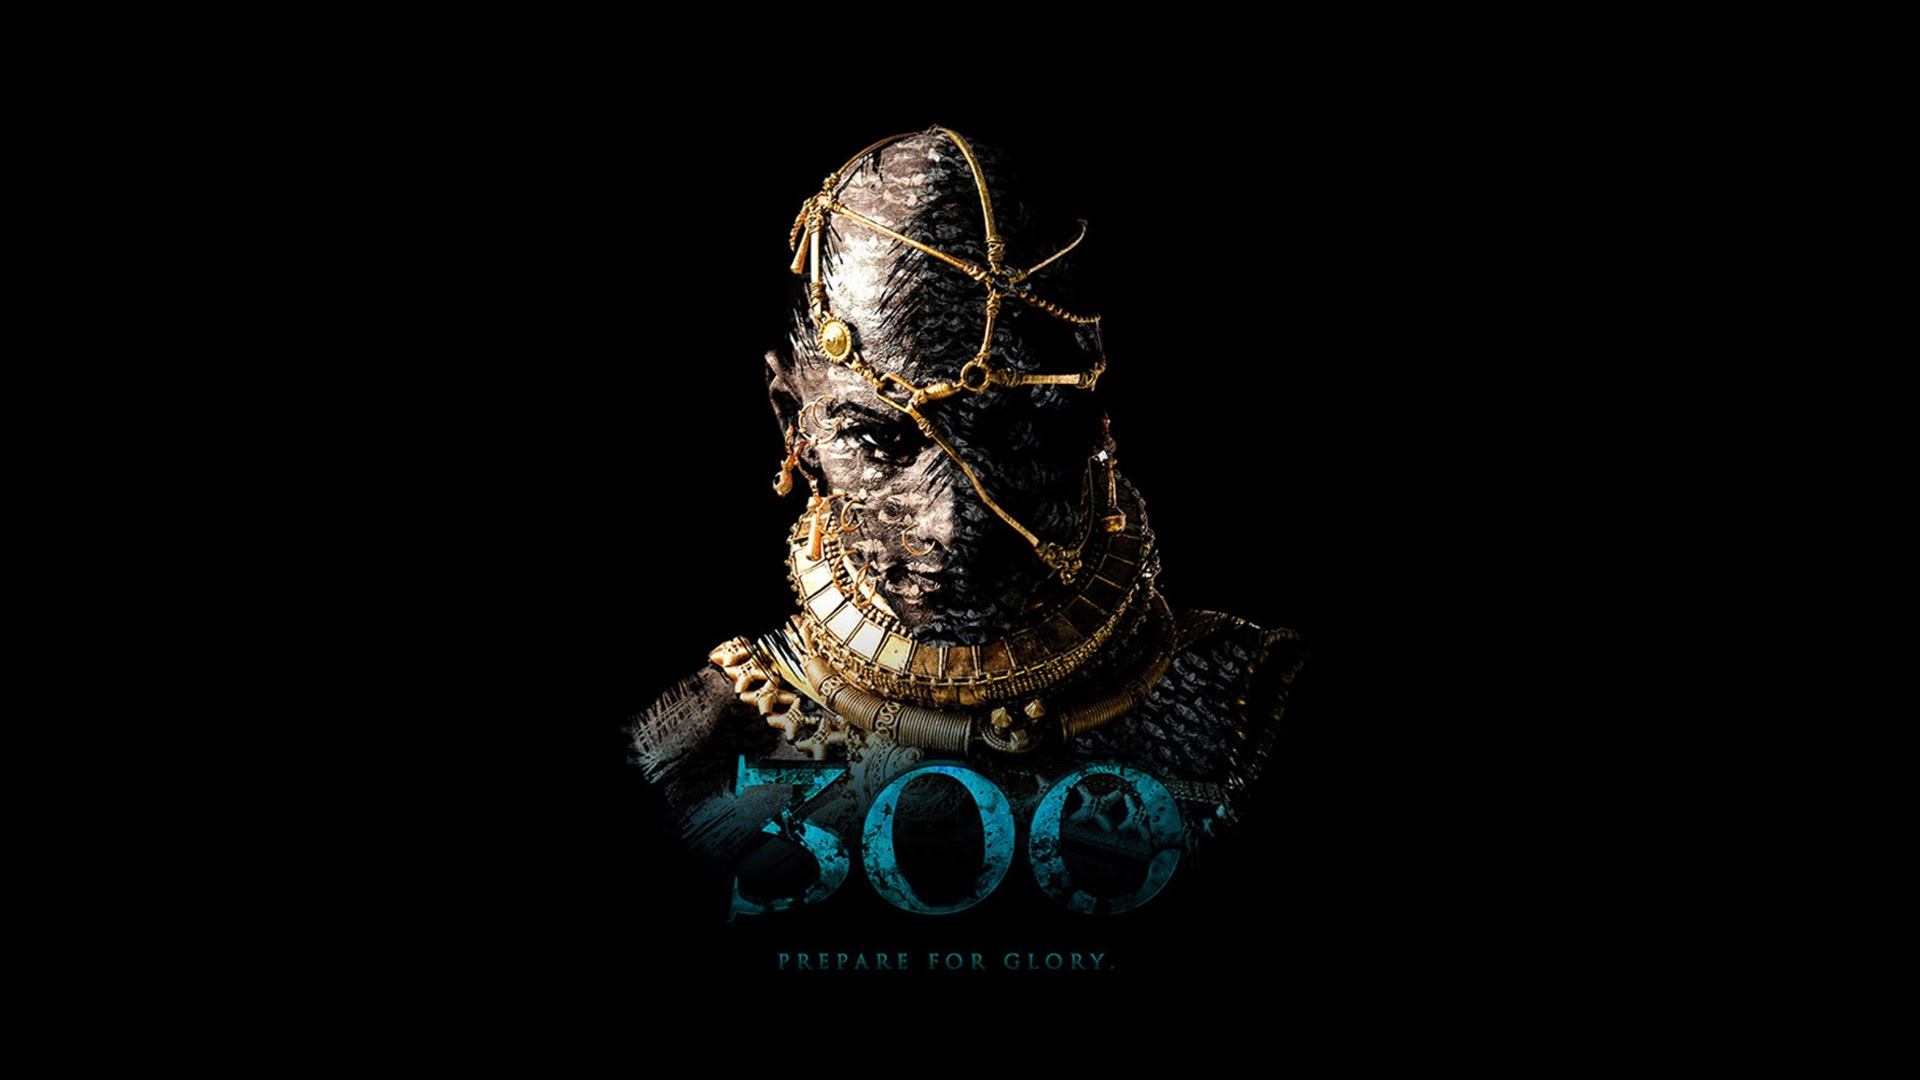 Xerxes 300 Rise of an Empire 9t